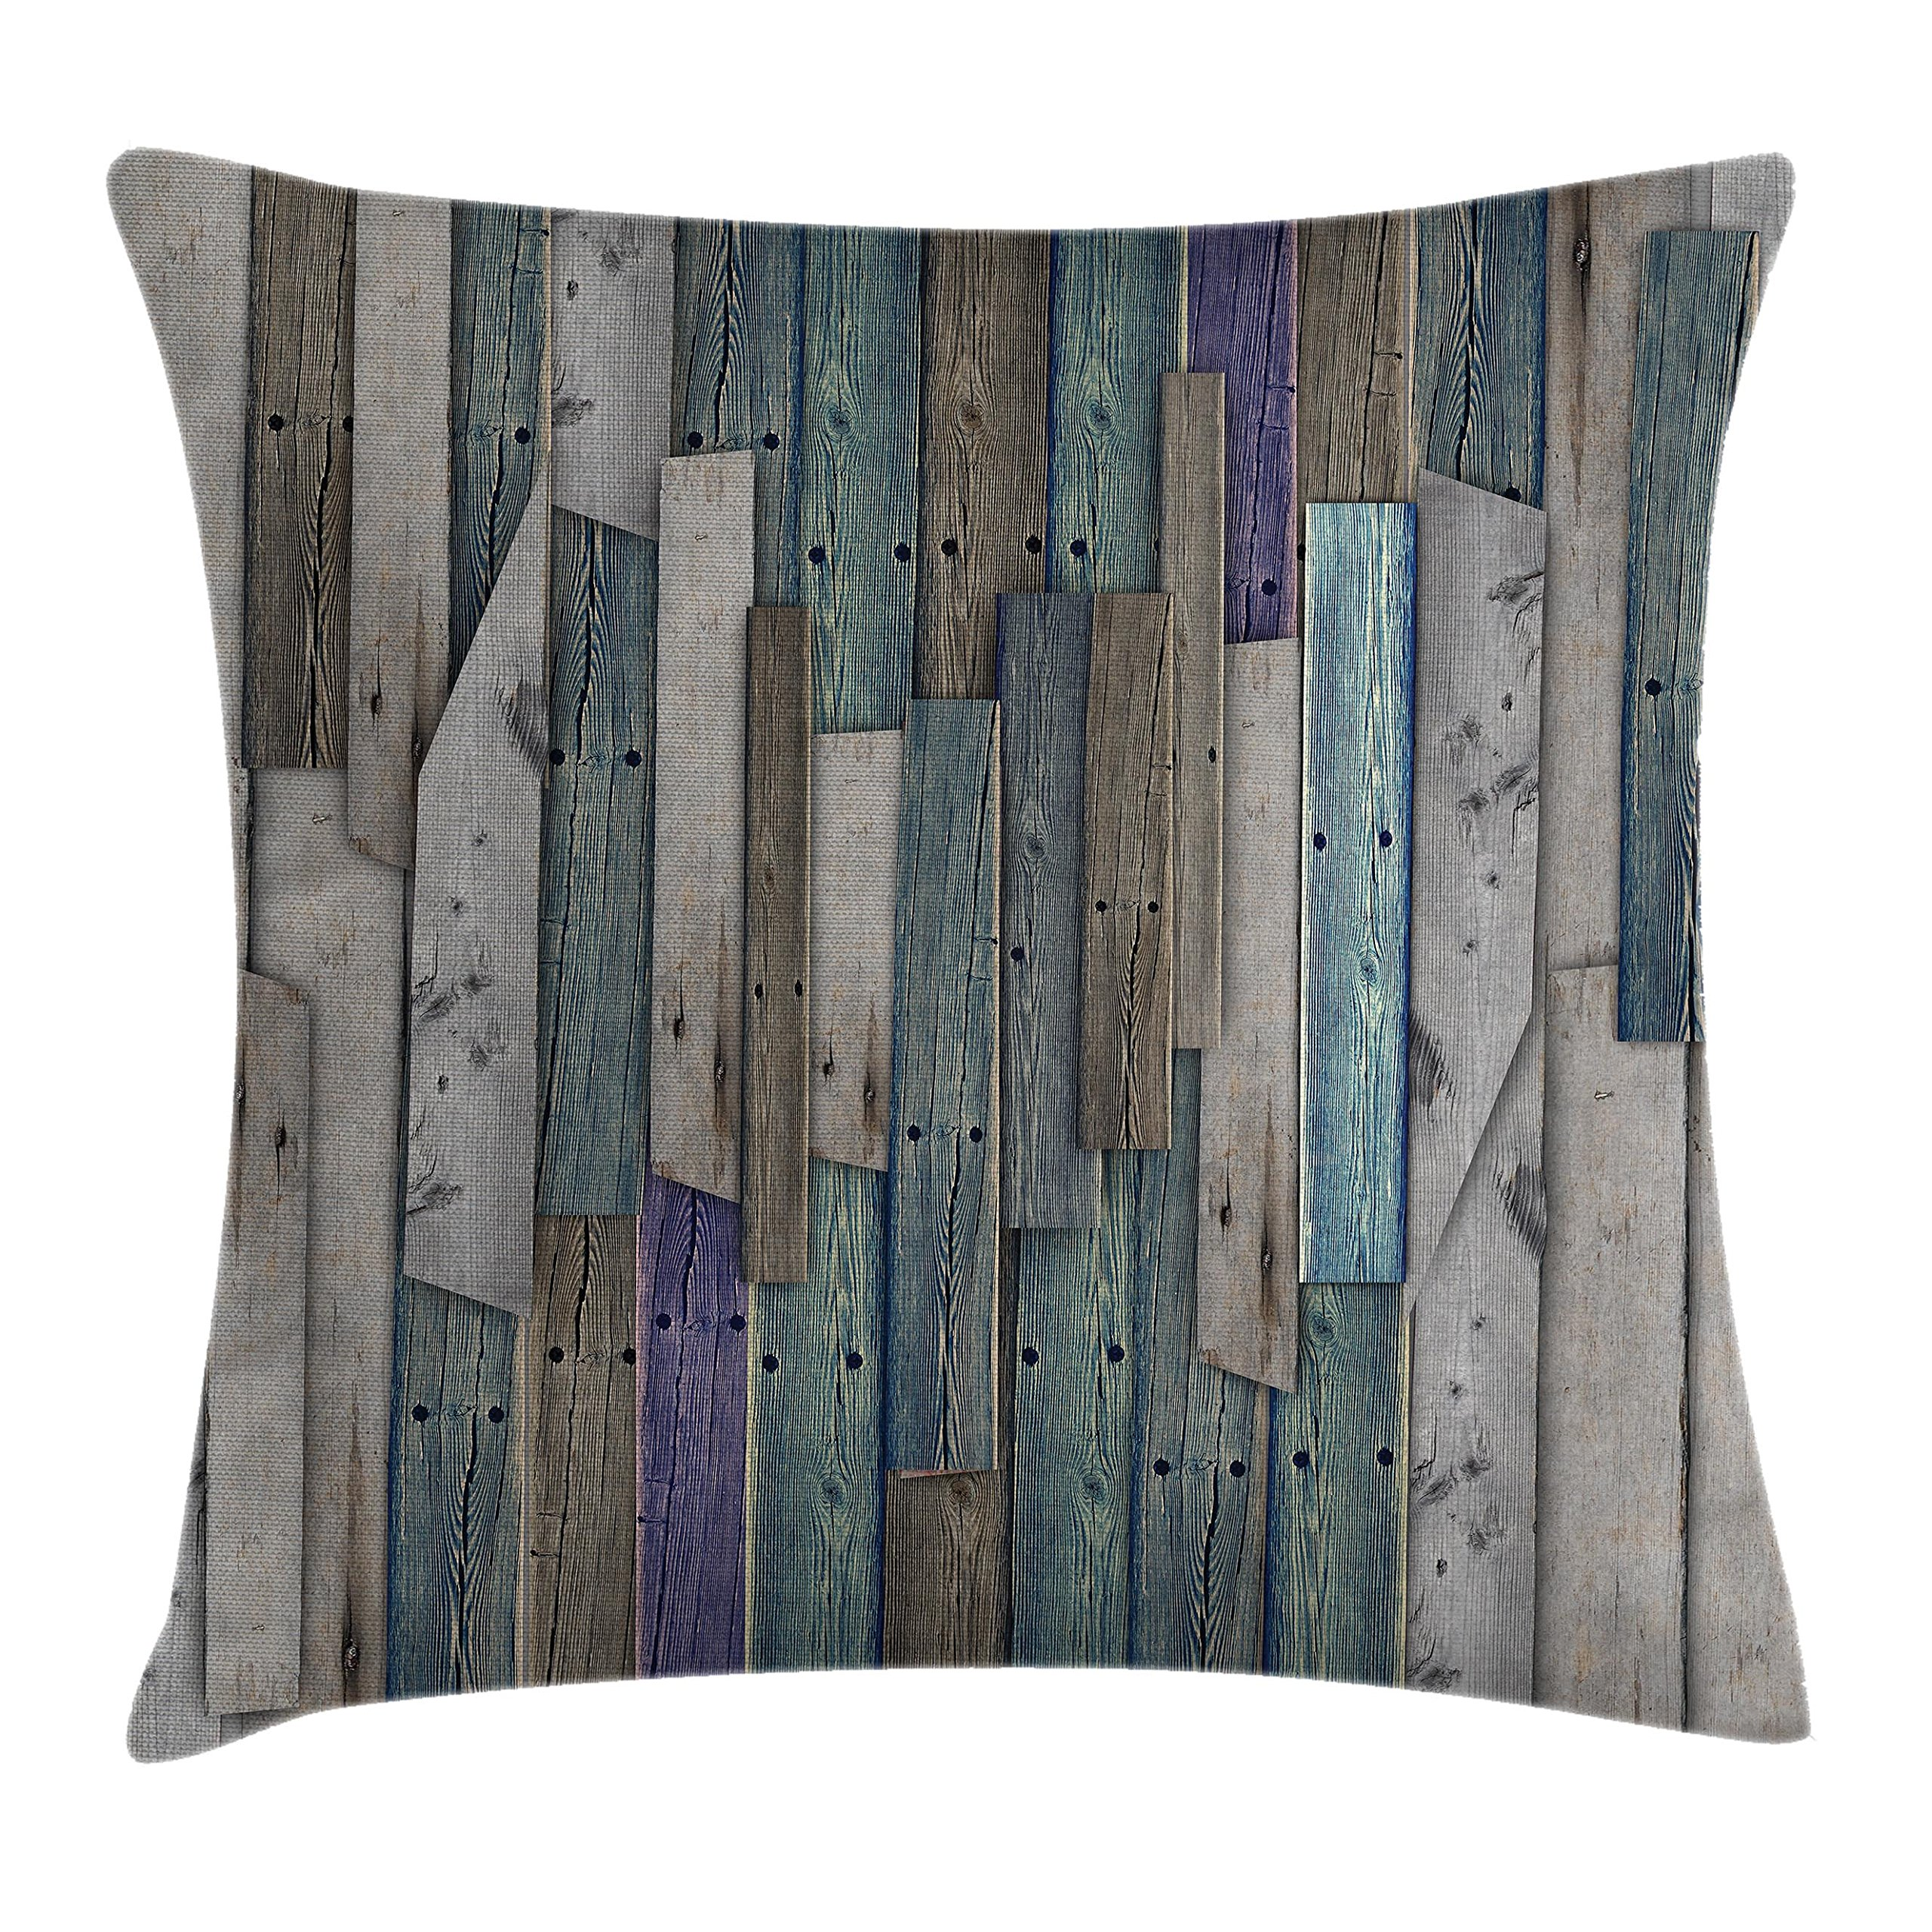 Ambesonne Wooden Throw Pillow Cushion Cover, Blue Grey Grunge Rustic Planks Barn House Wood and Nails Lodge Hardwood Graphic Print, Decorative Square Accent Pillow Case, 18 X18 inches, Gray Blue by Ambesonne (Image #1)